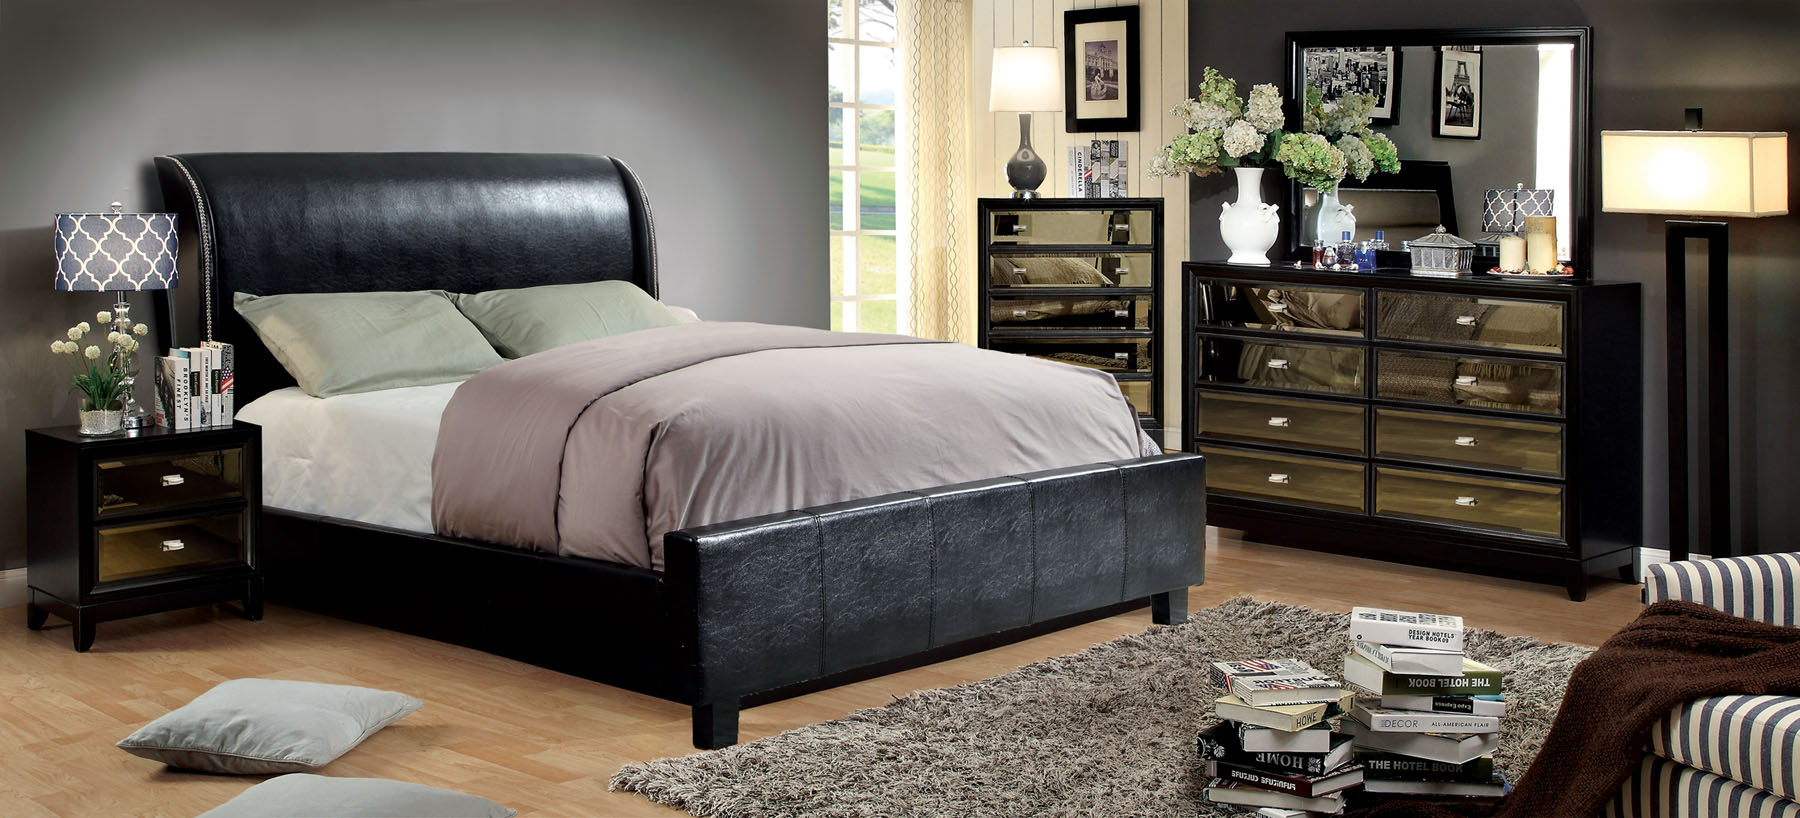 Maxon Black Bonded Leather Bedroom Set Las Vegas